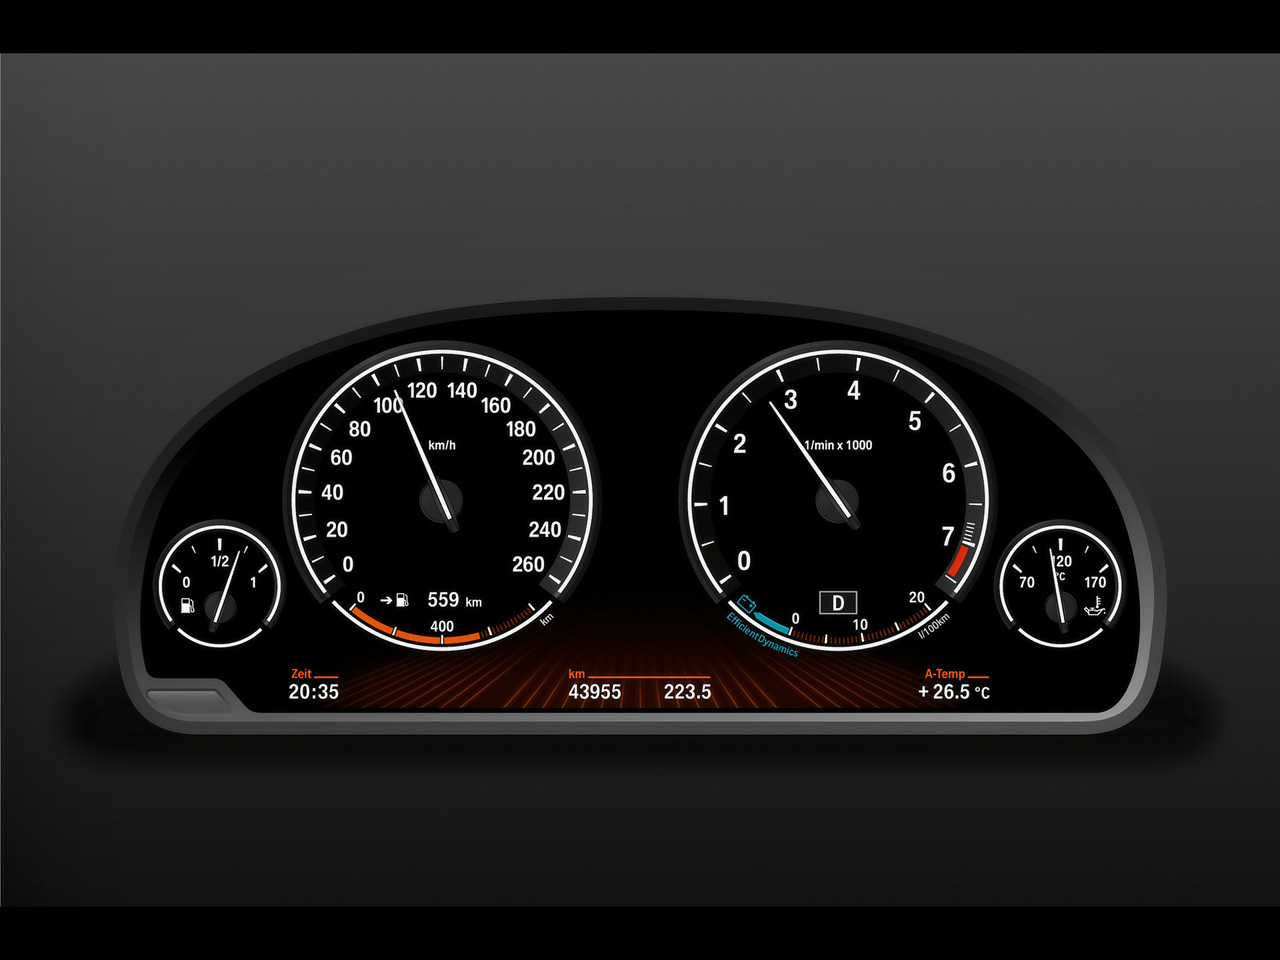 What is the emptied panel used just below the speedometer on the dash buycottarizona Gallery